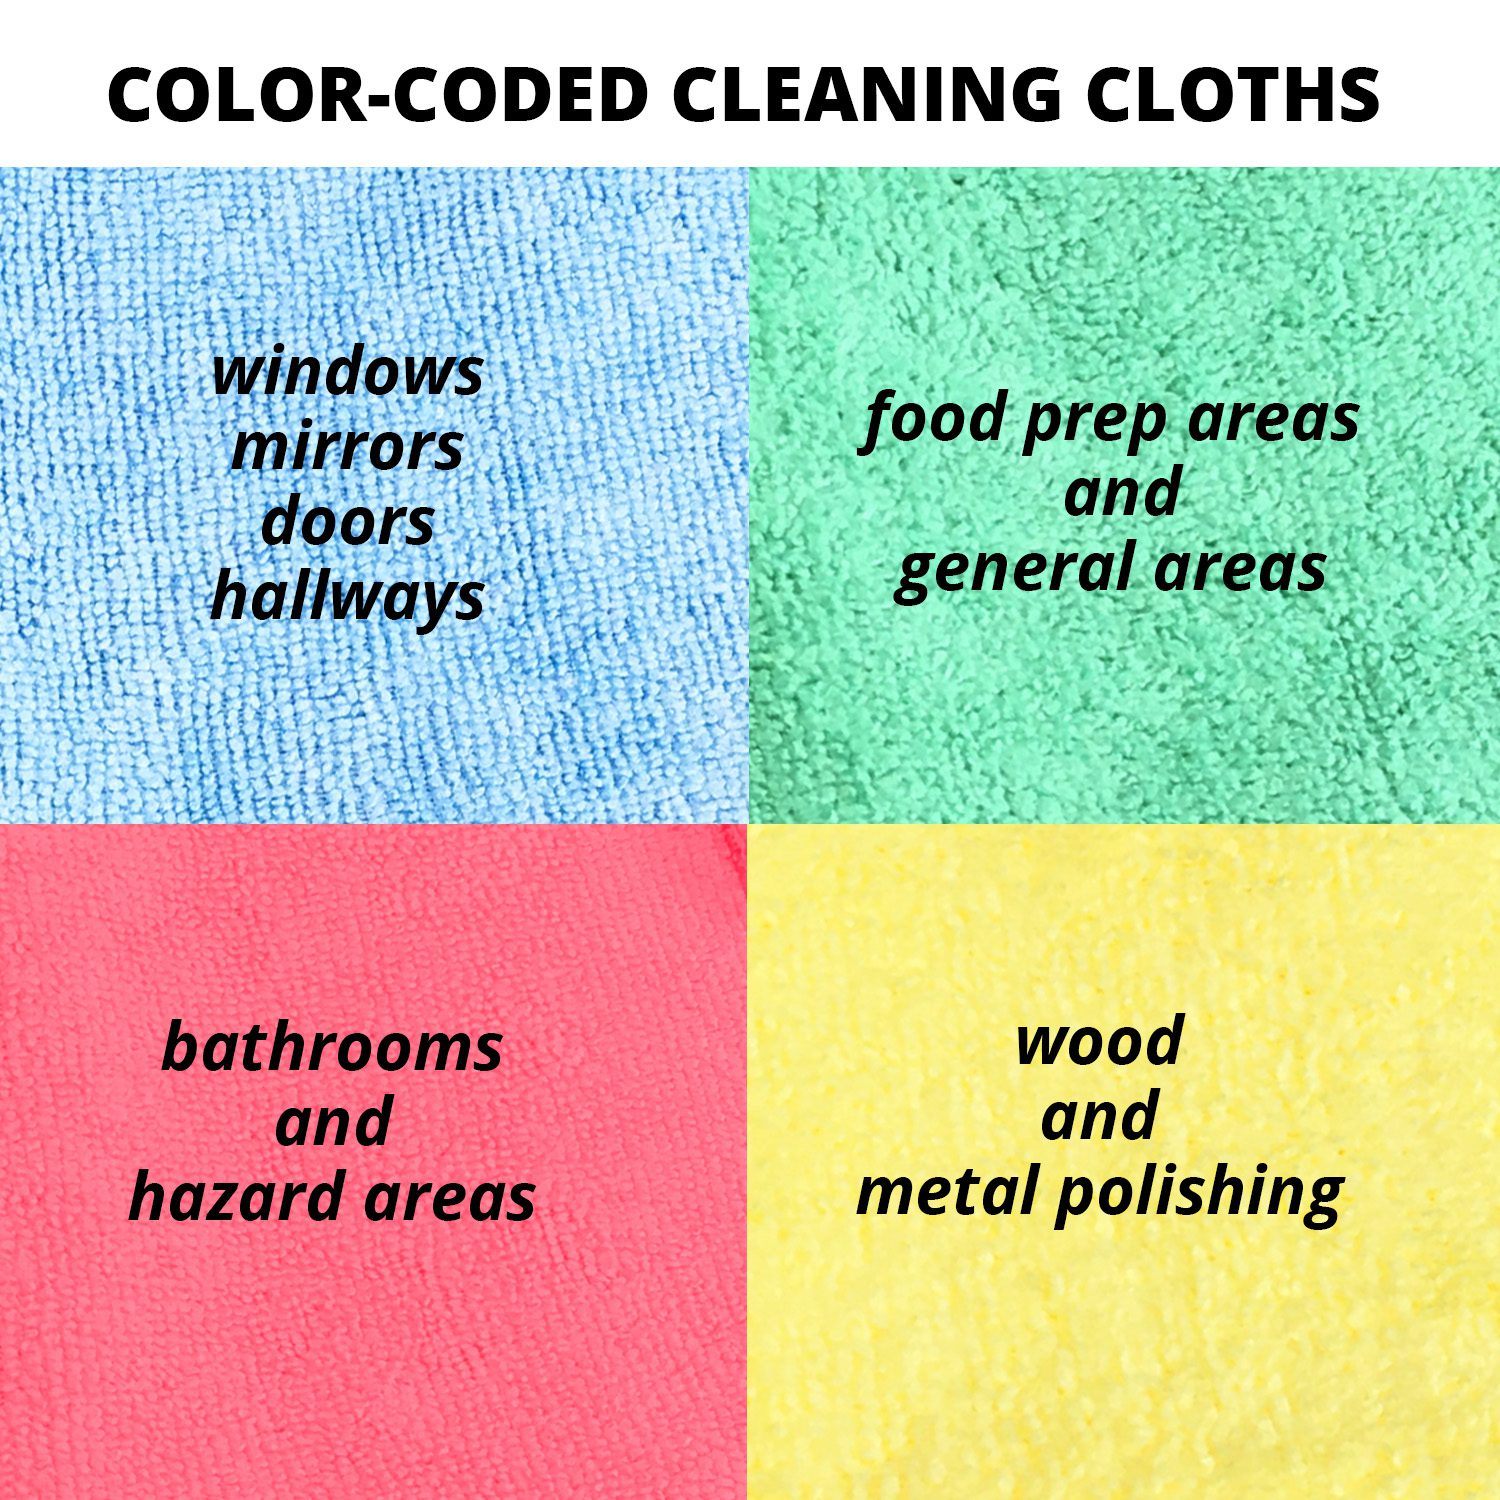 Color-coded cleaning cloths